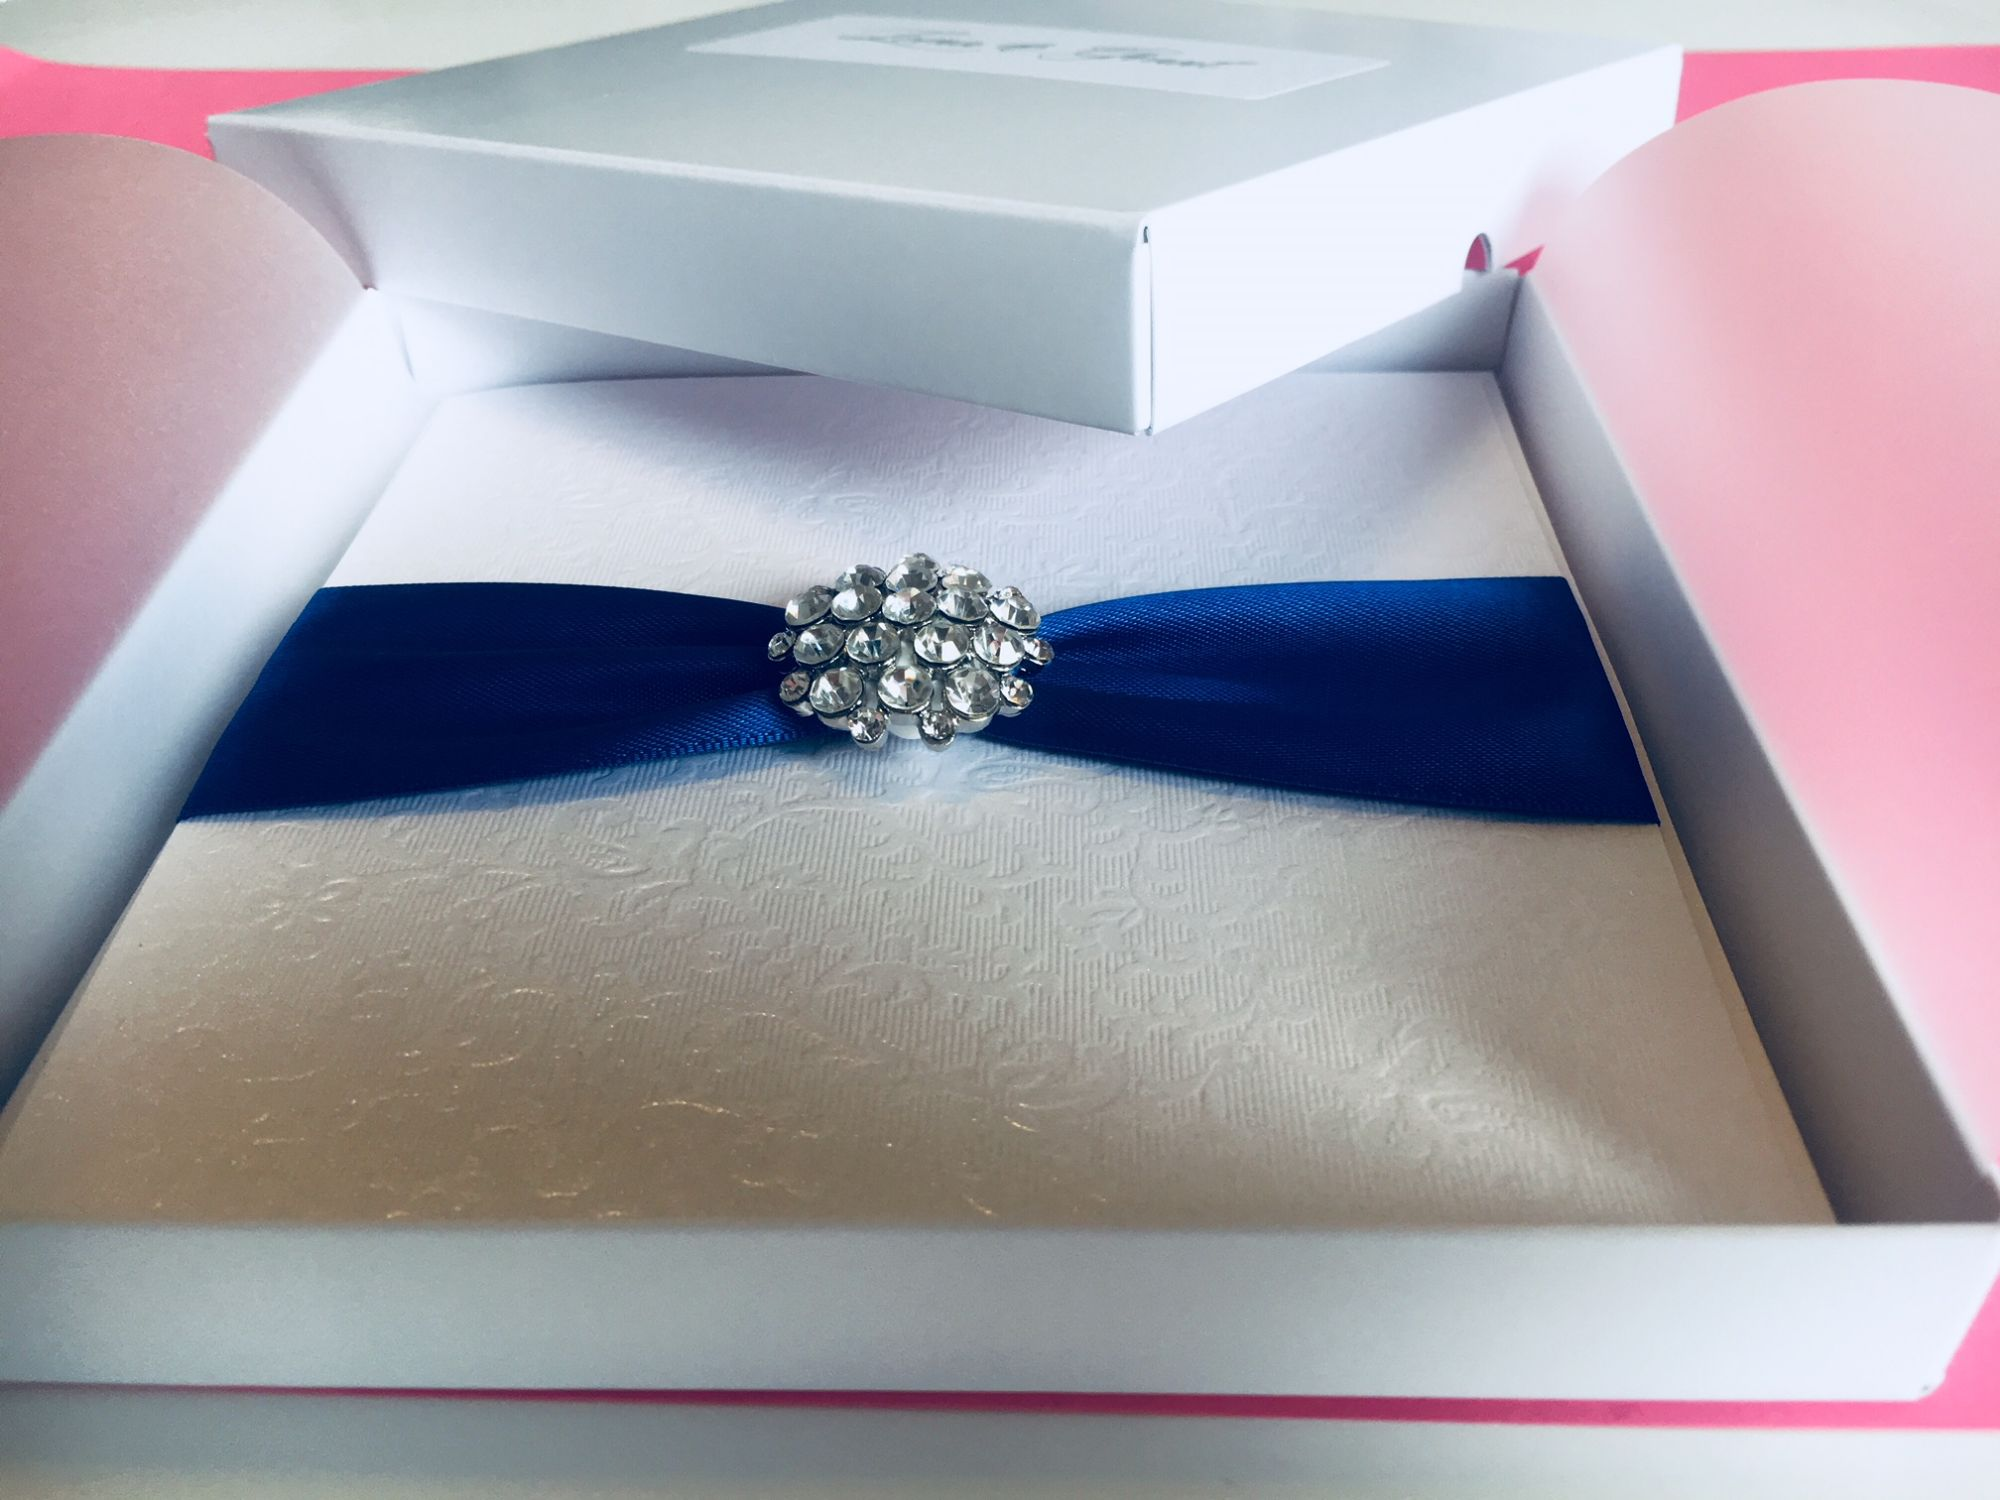 Boxed luxury wedding invitation with box and lid